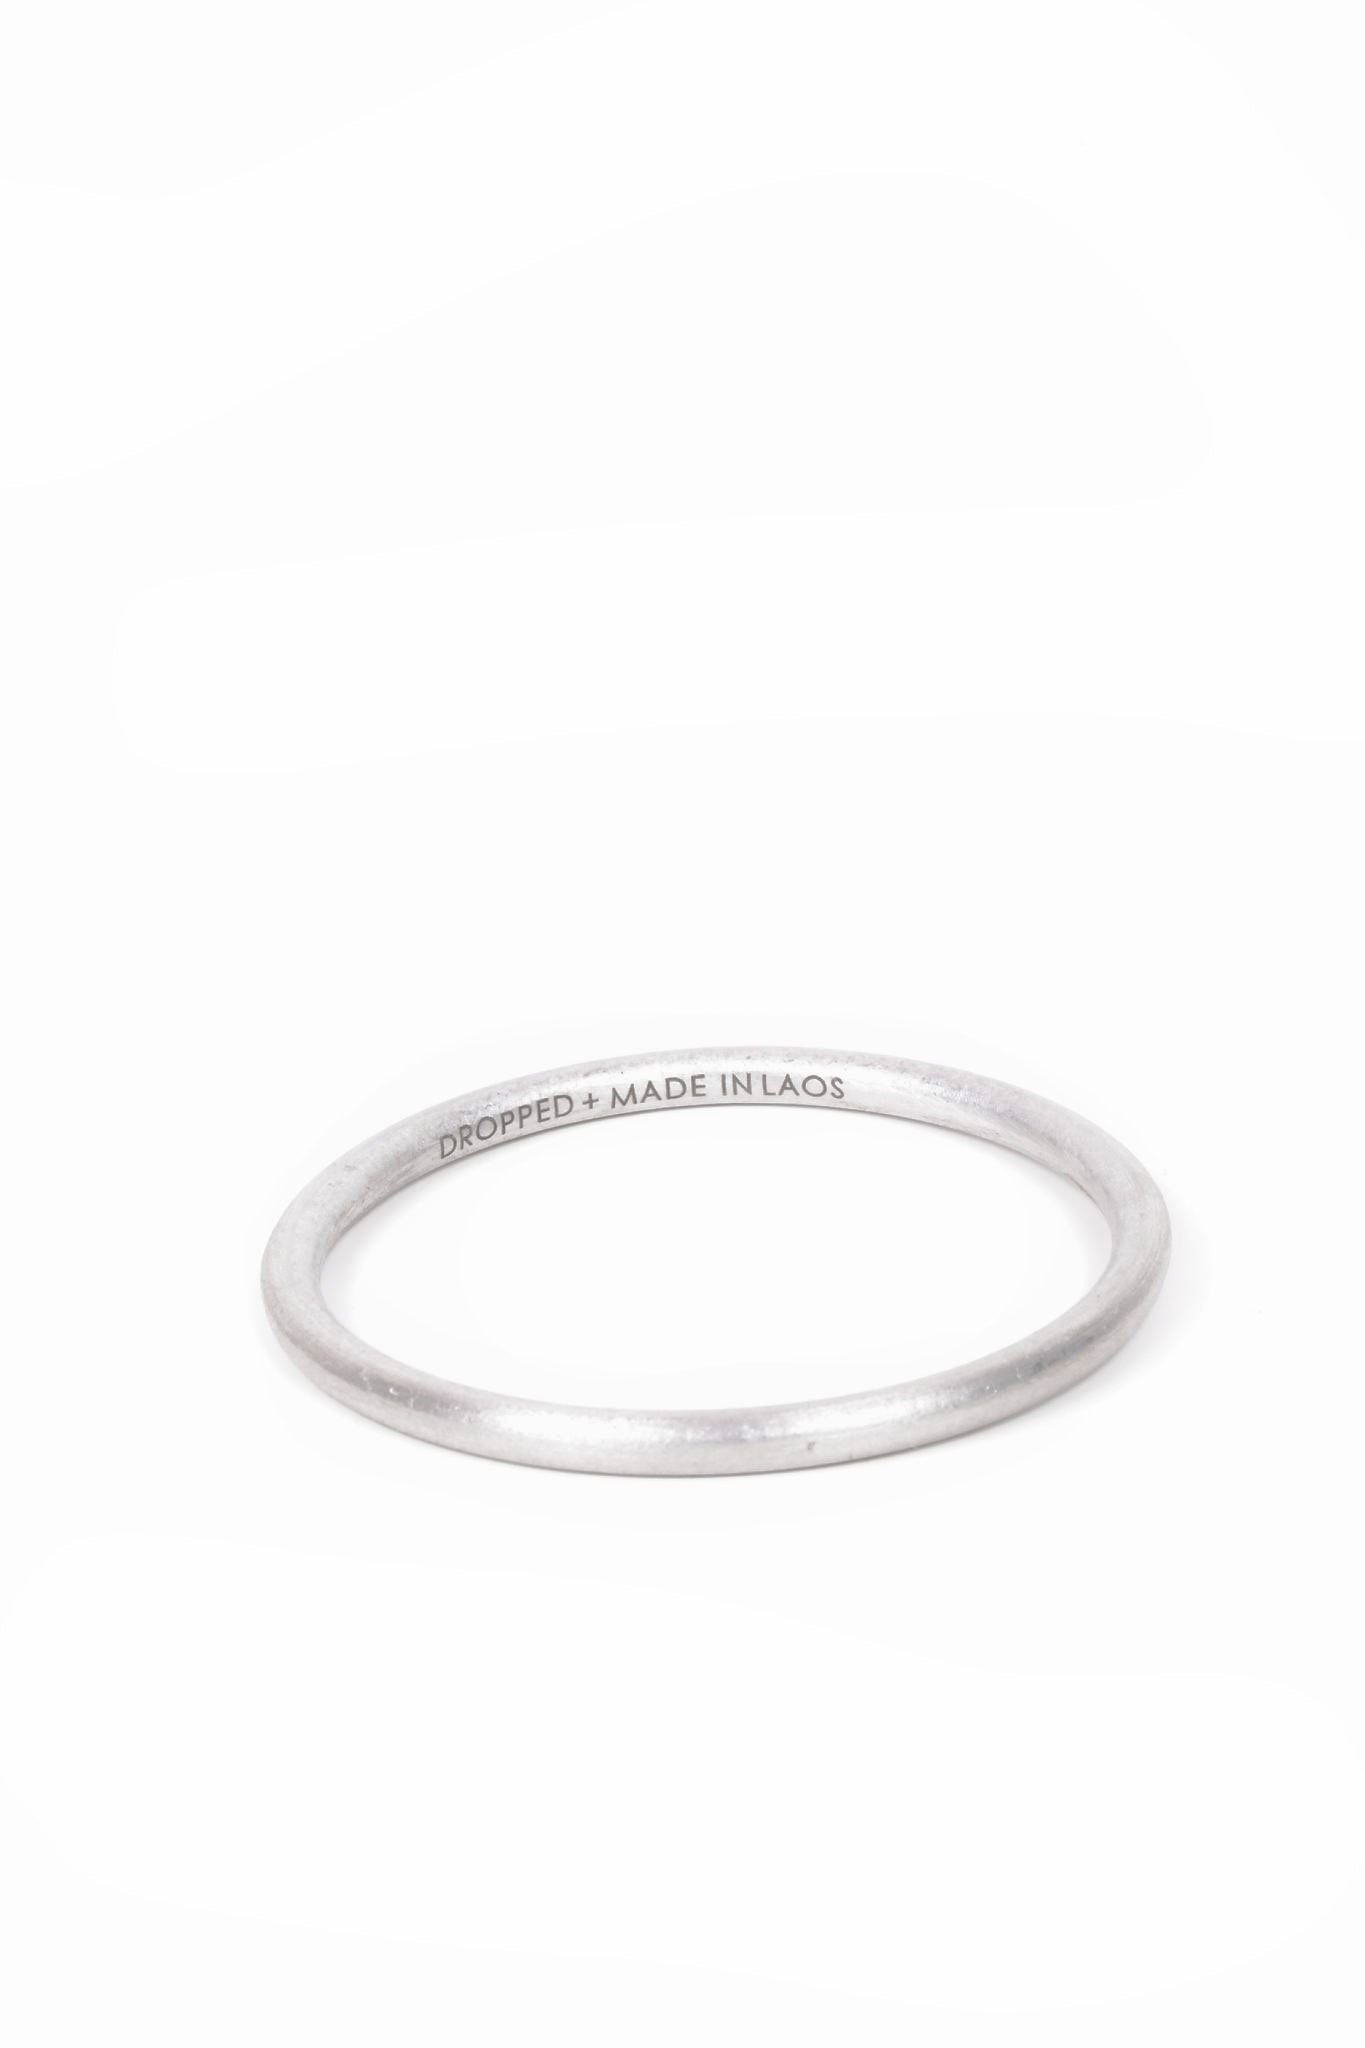 Article 22 Peacebomb Interior Story Bangle